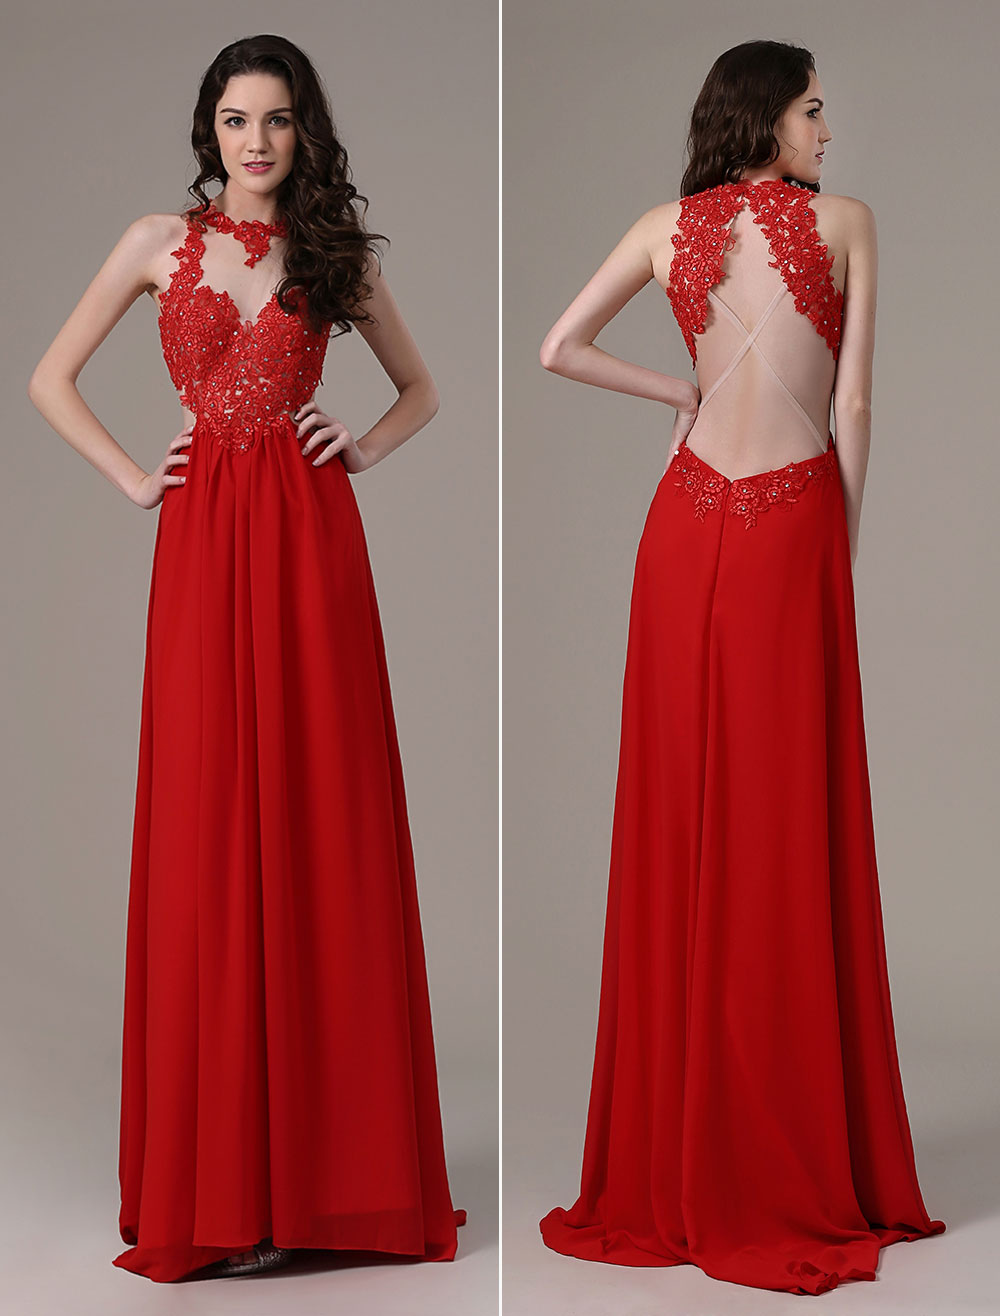 Buy Red Prom Dresses 2018 Long Backless Evening Dress Cross Back Illusion Lace Chiffon Party Dress With Train for $133.19 in Milanoo store